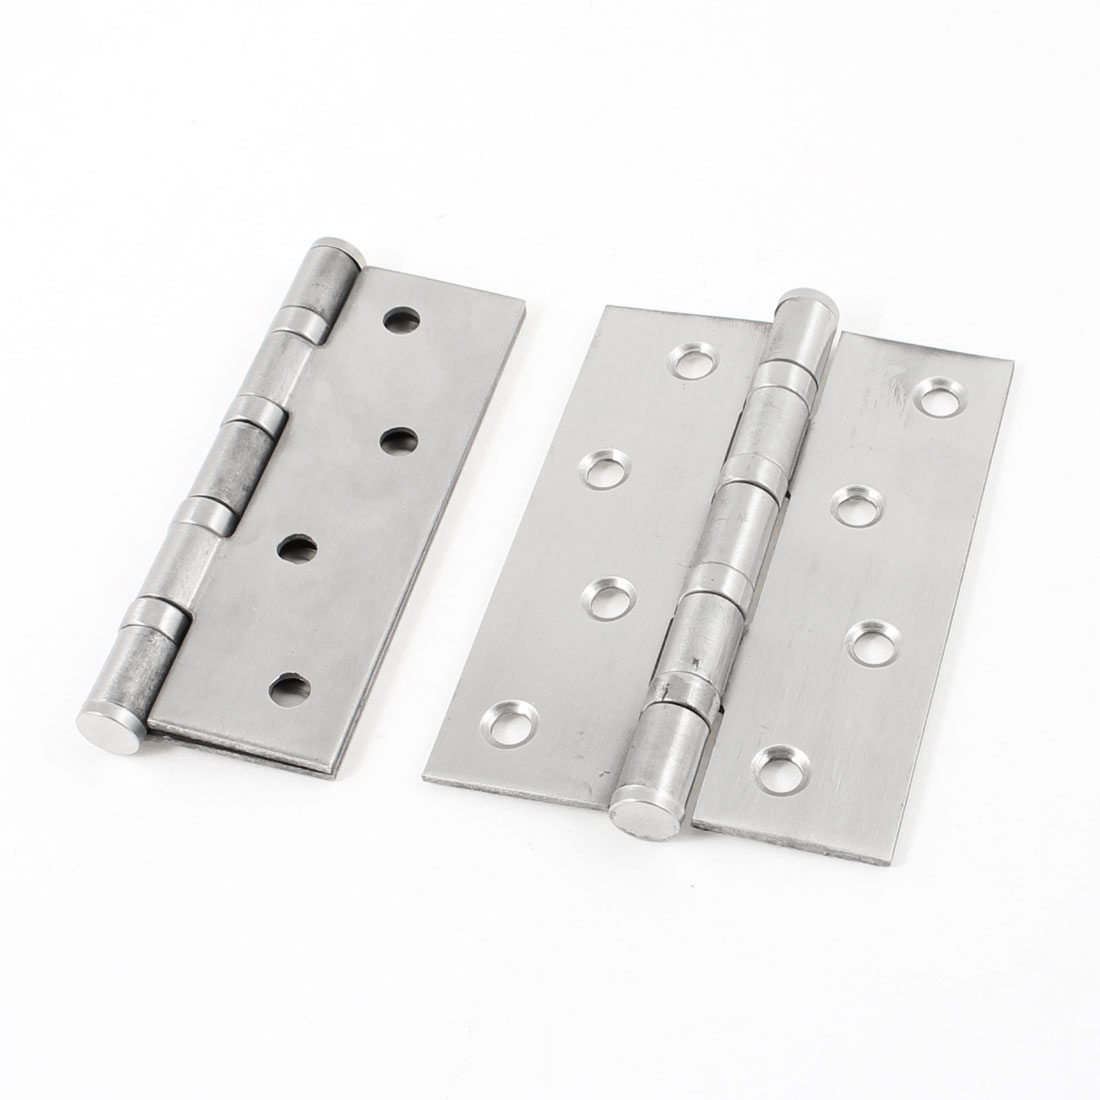 2 Pcs 10cm Length Stainless Steel Satin Nickel Door Gate Hinges Hardware